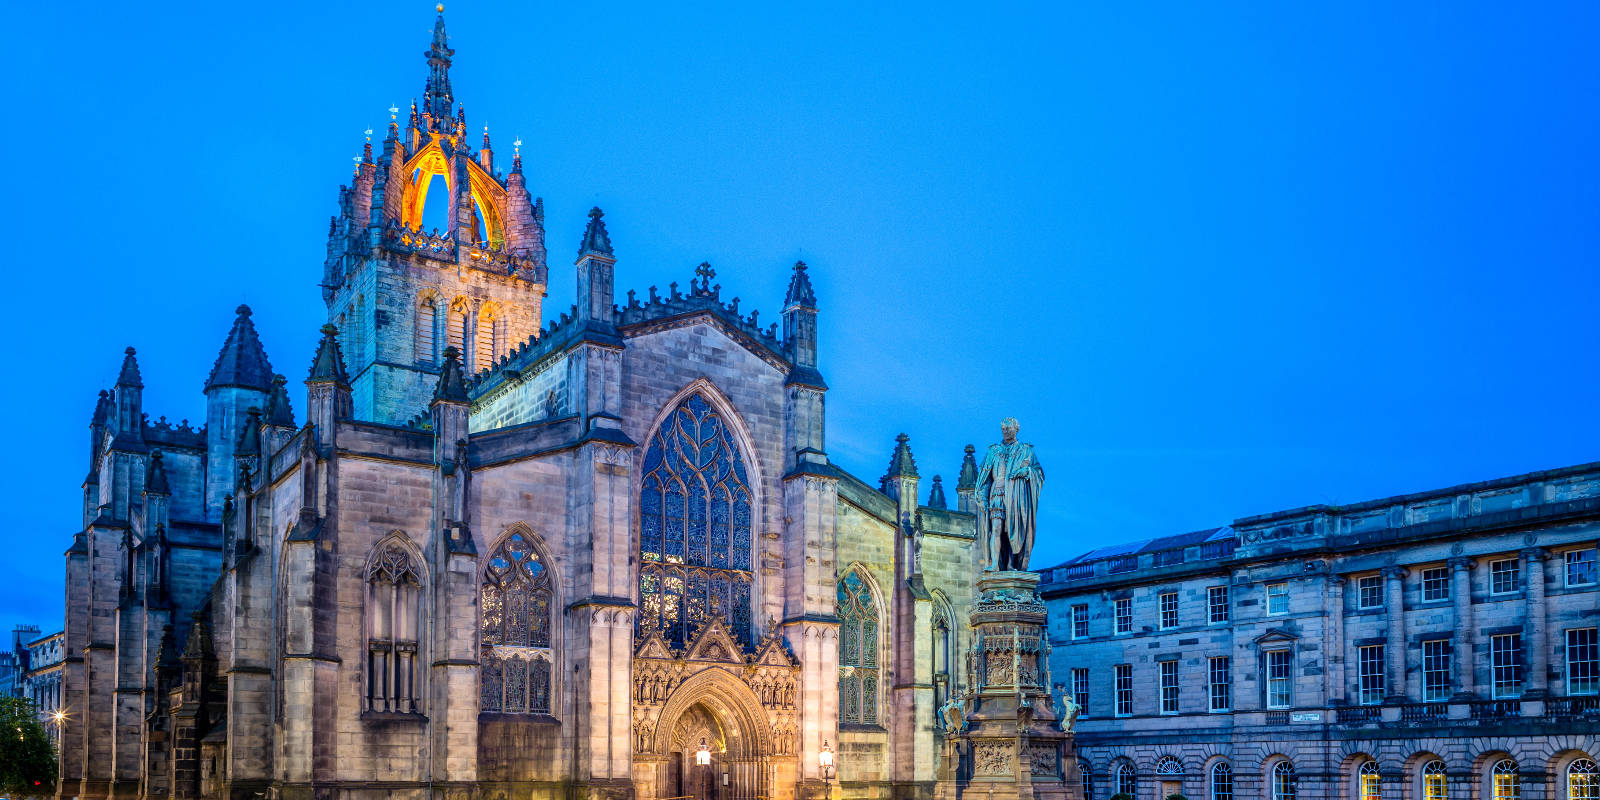 St Giles Cathedral in Edinburgh at night